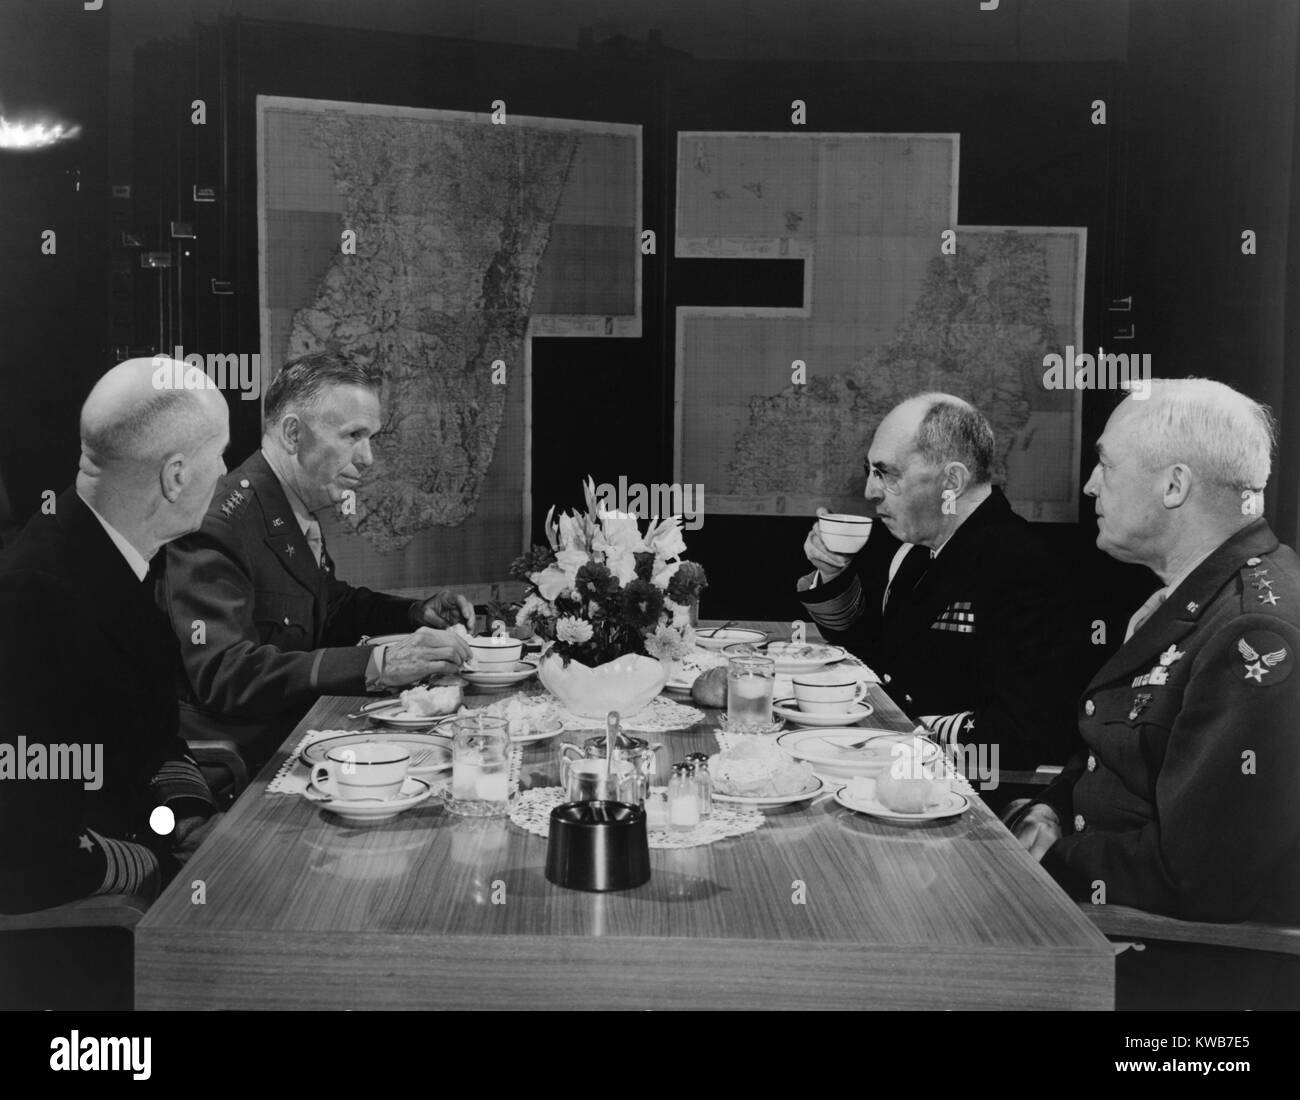 U.S. Military leaders in conference. L-R: Adm. Ernest King, Chief of Staff Gen. George Marshall, Adm. William Leahy, Stock Photo